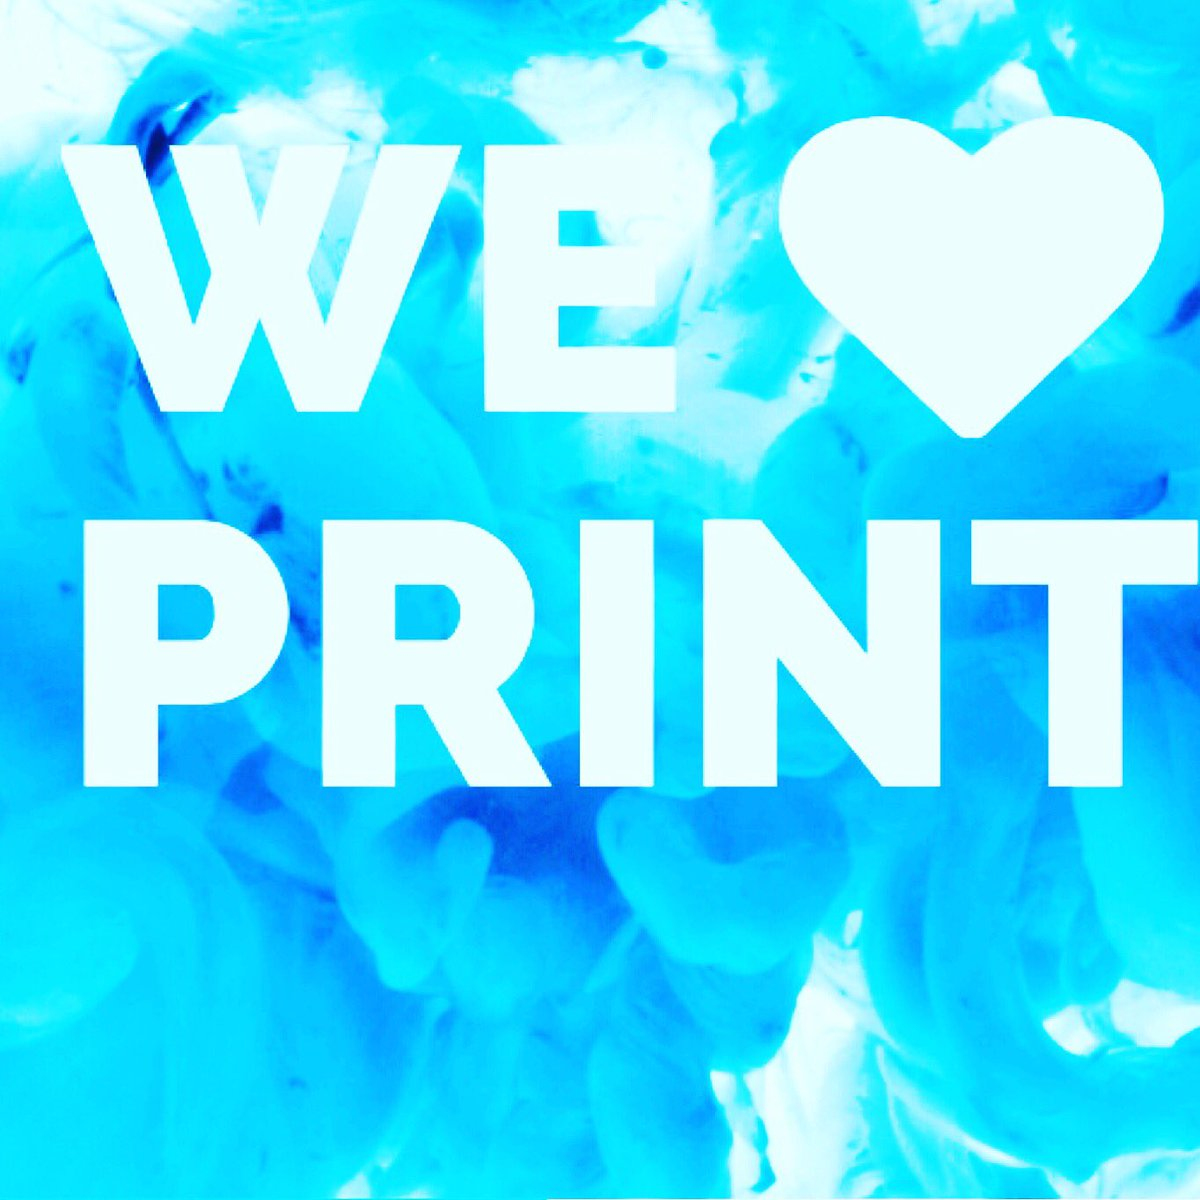 Total Print Direct provides quick turnaround digital and fine art printing for both business and the general public. #Total #print #direct #printers #smallformat #largeformat #quality #businesscards #fineart #clothing #loadsmore<br>http://pic.twitter.com/Y5GNMeEmR4